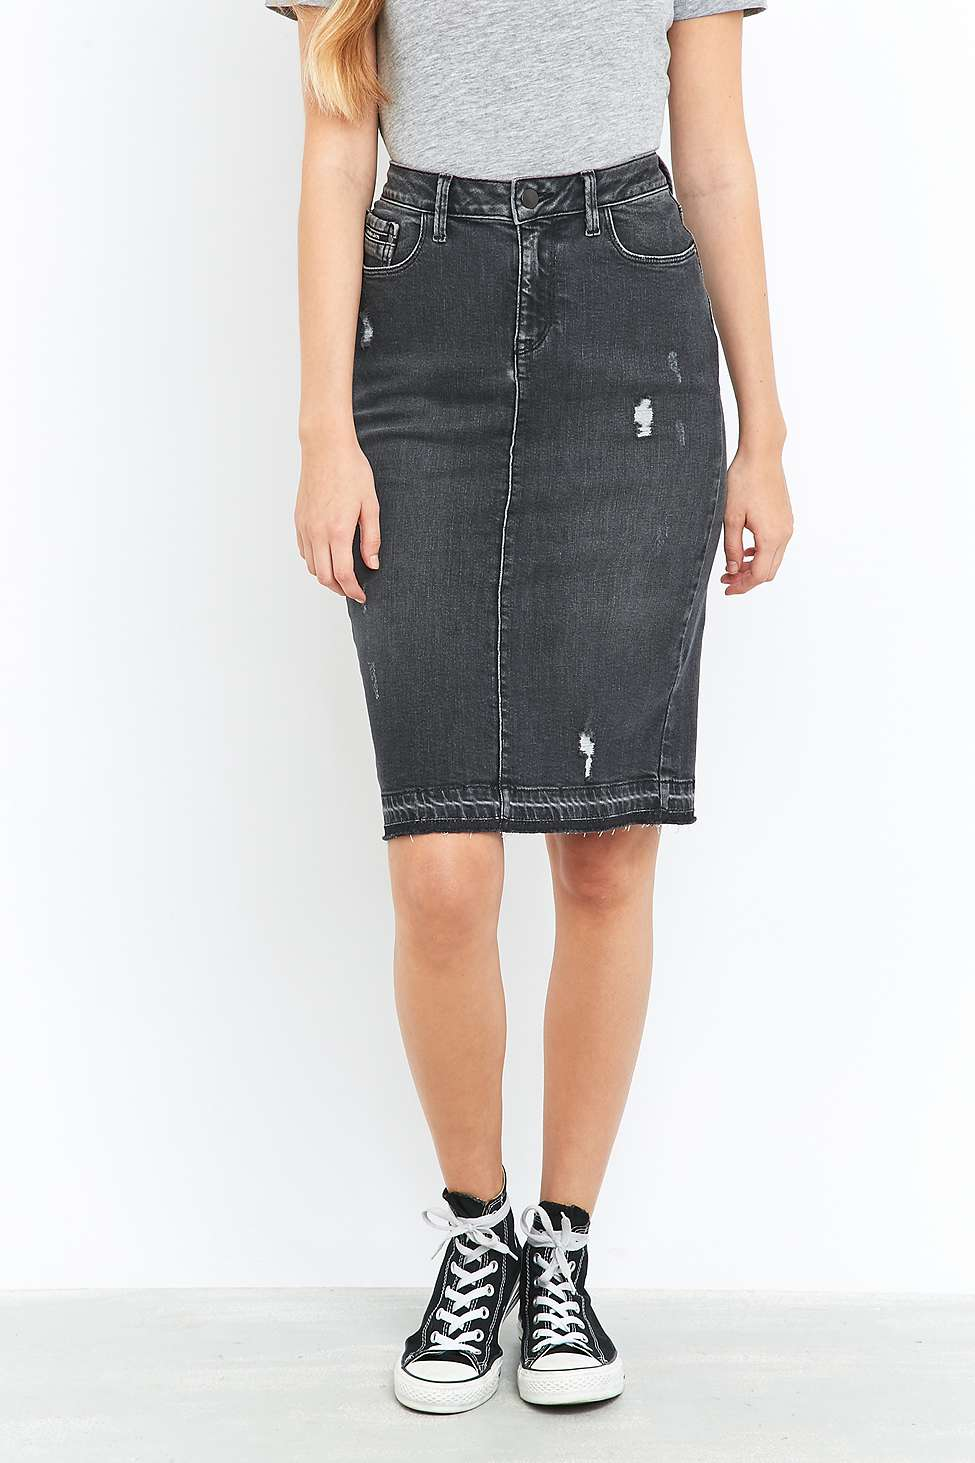 Calvin Klein Jeans Black Denim Pencil Midi Skirt | Urban Outfitters